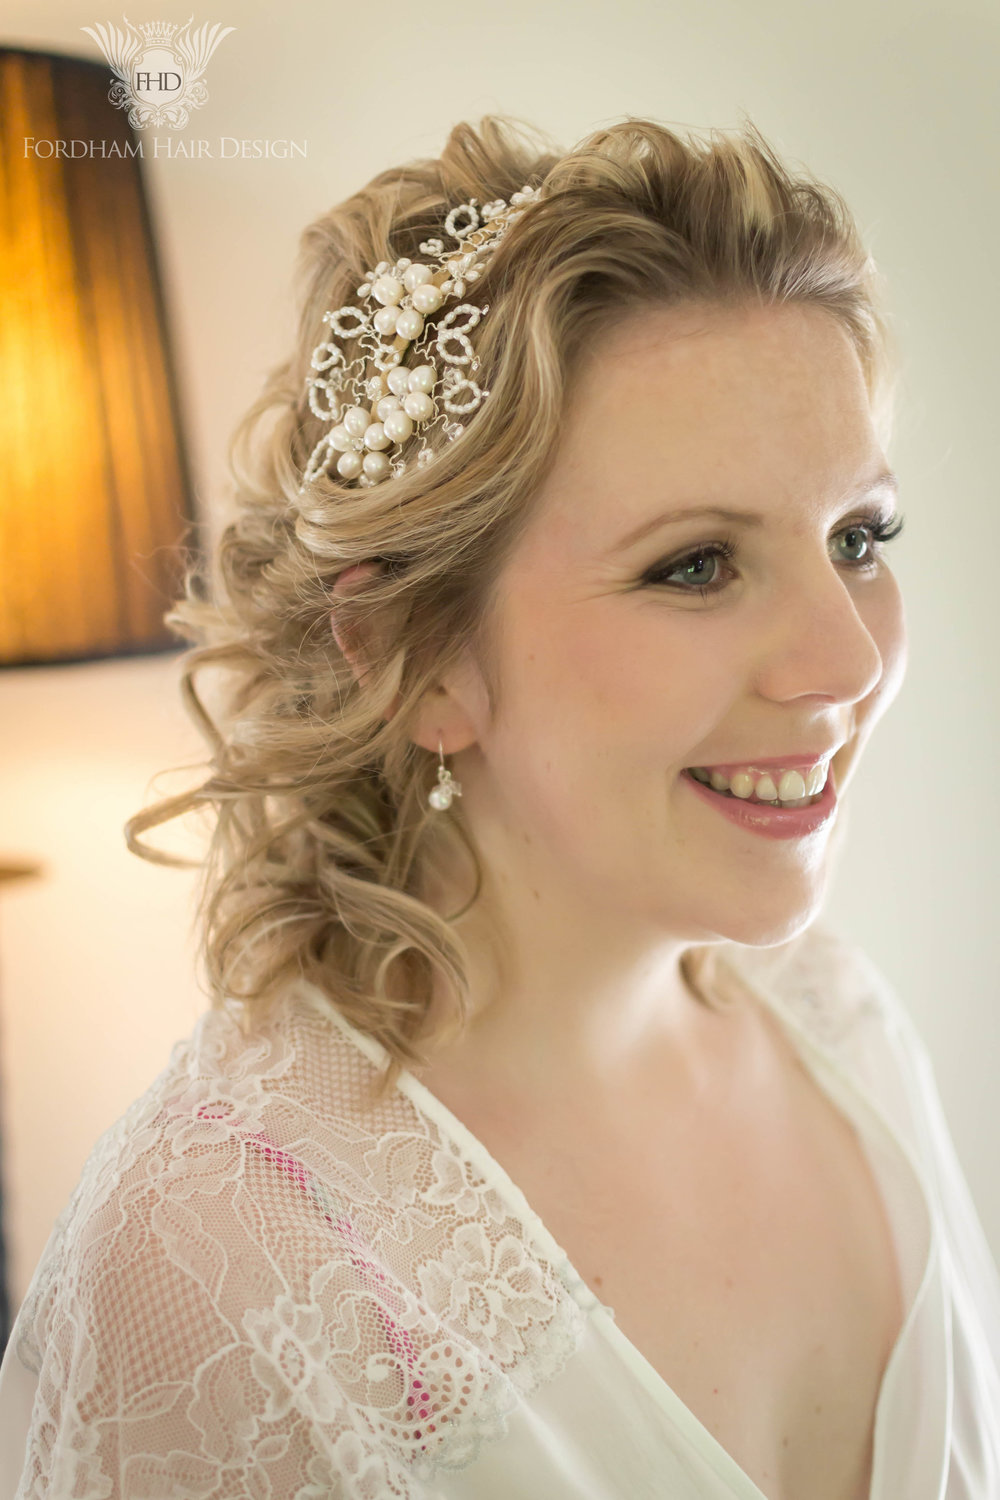 Eastington Park Wedding Hair